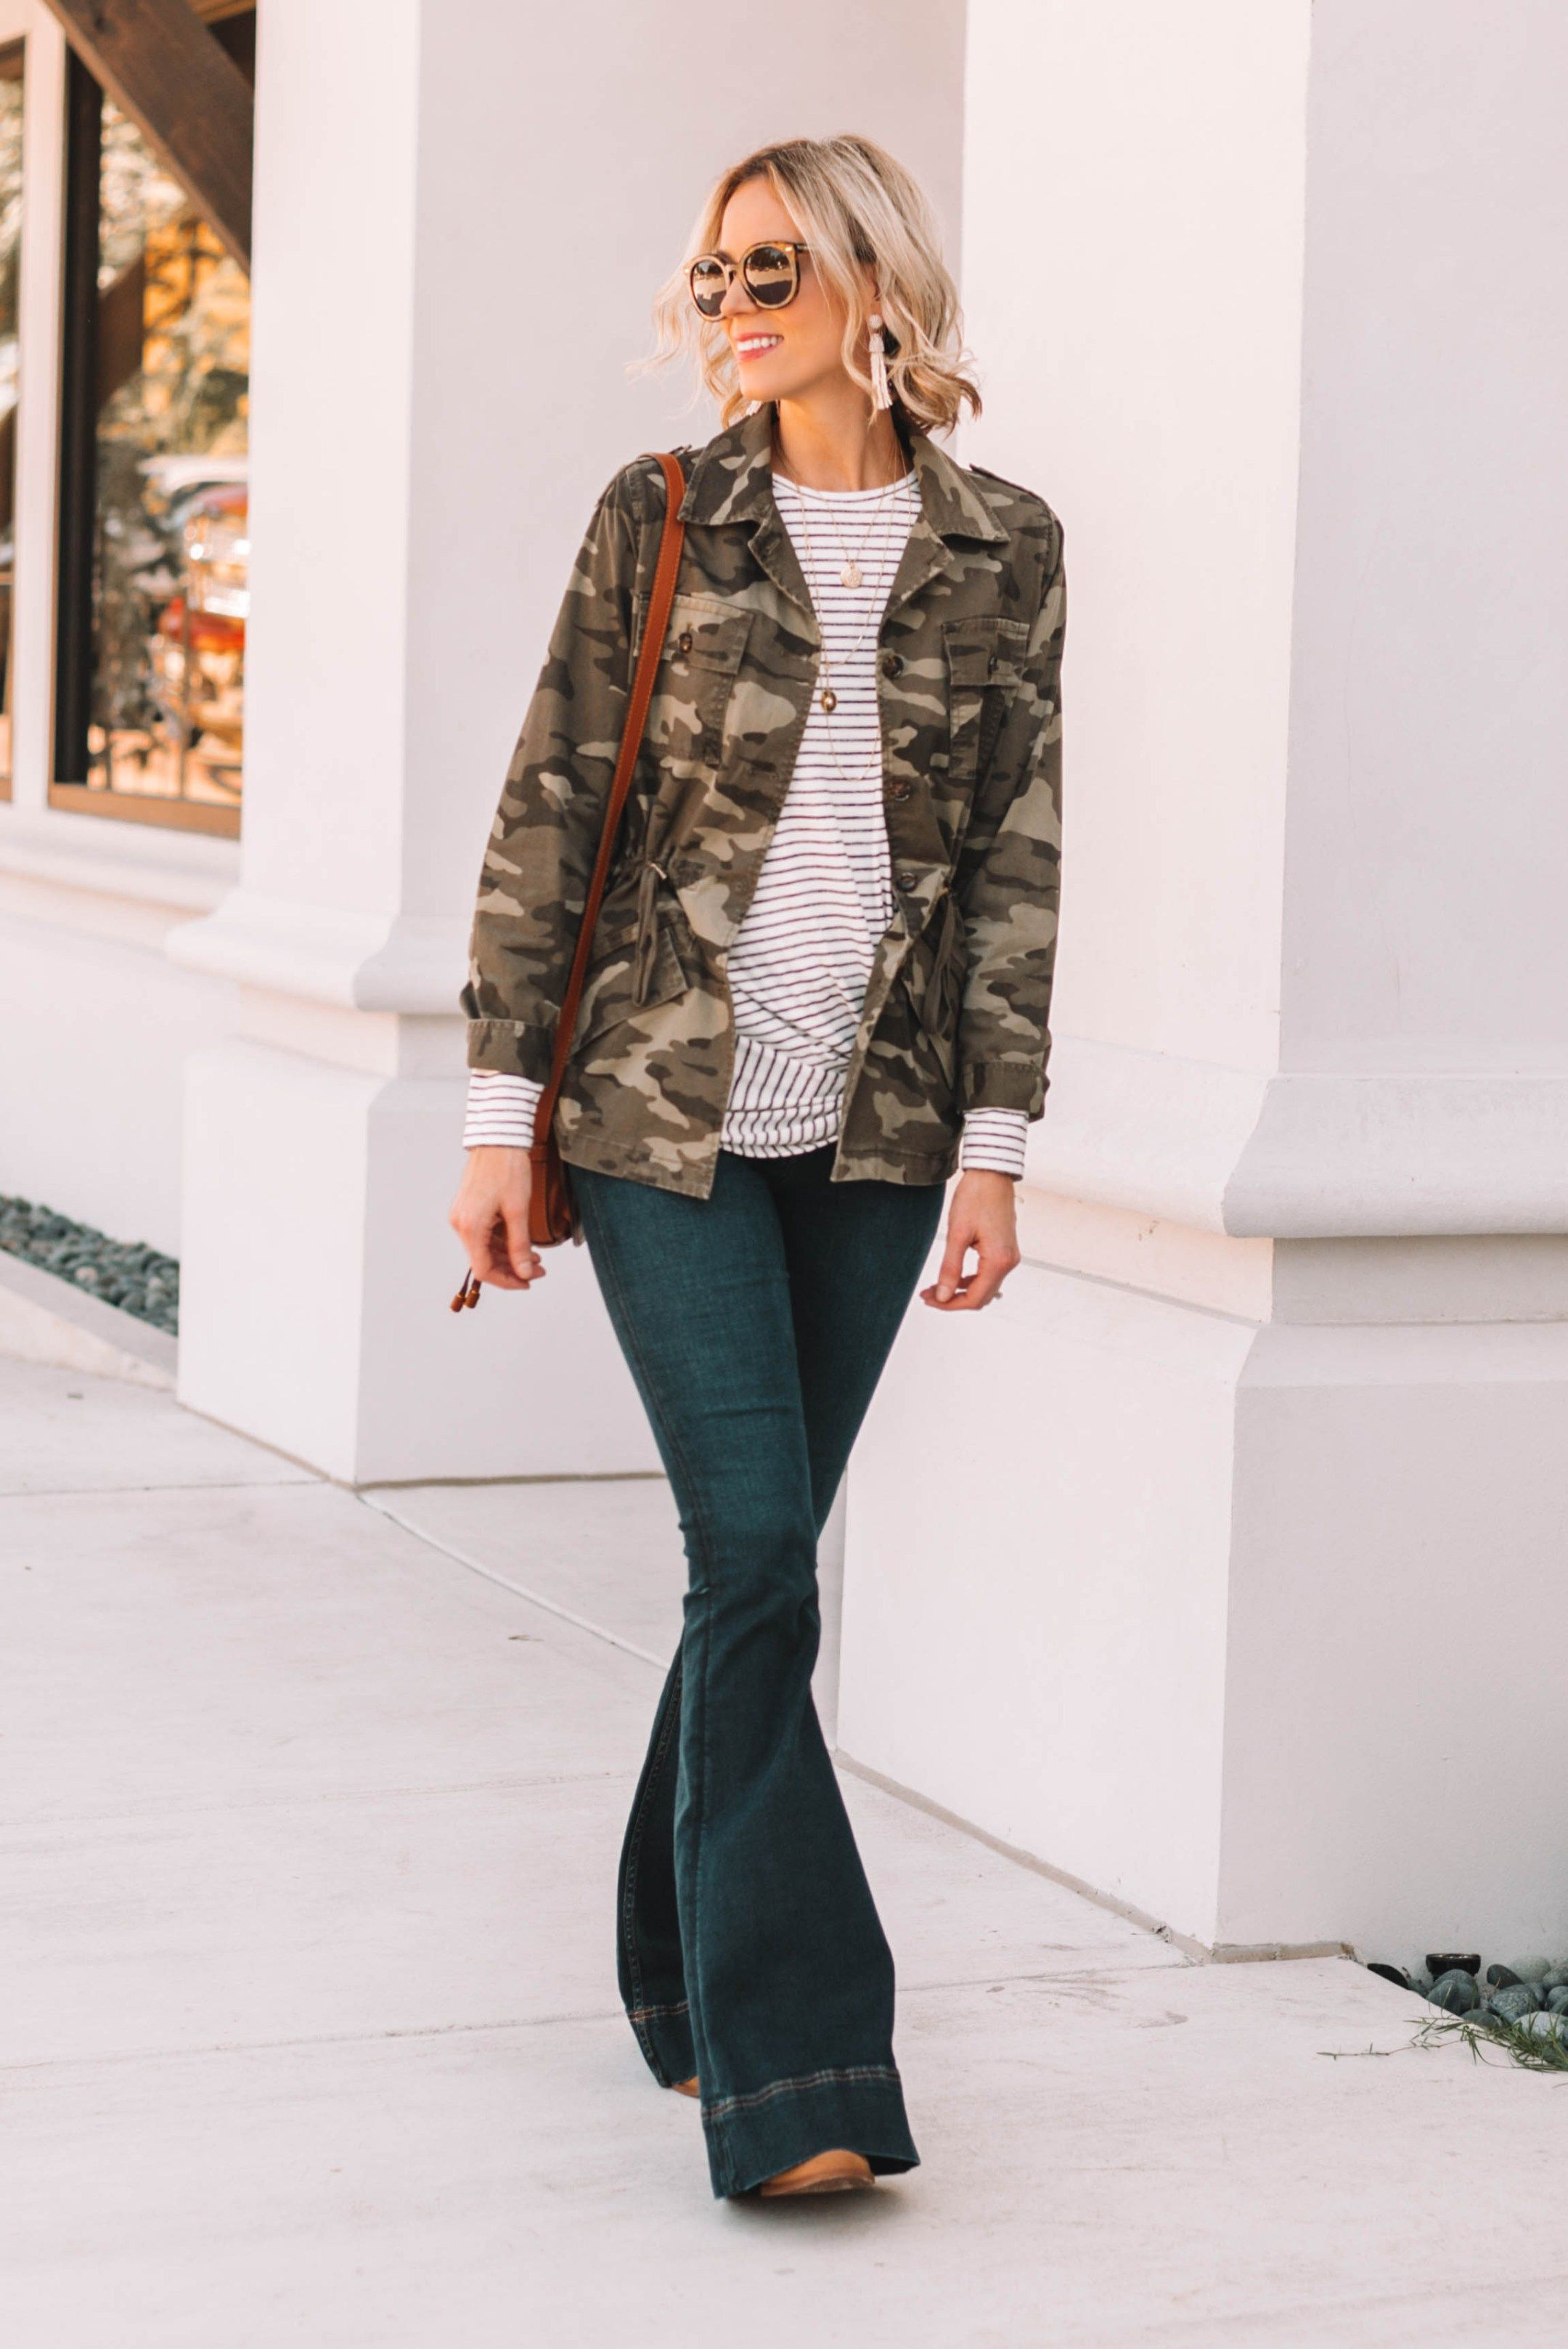 Camo And Stripes Fun Print Mix Straight A Style Camo Jacket Women Jacket Outfit Women Camo Jacket Outfit Fall [ 3235 x 2160 Pixel ]